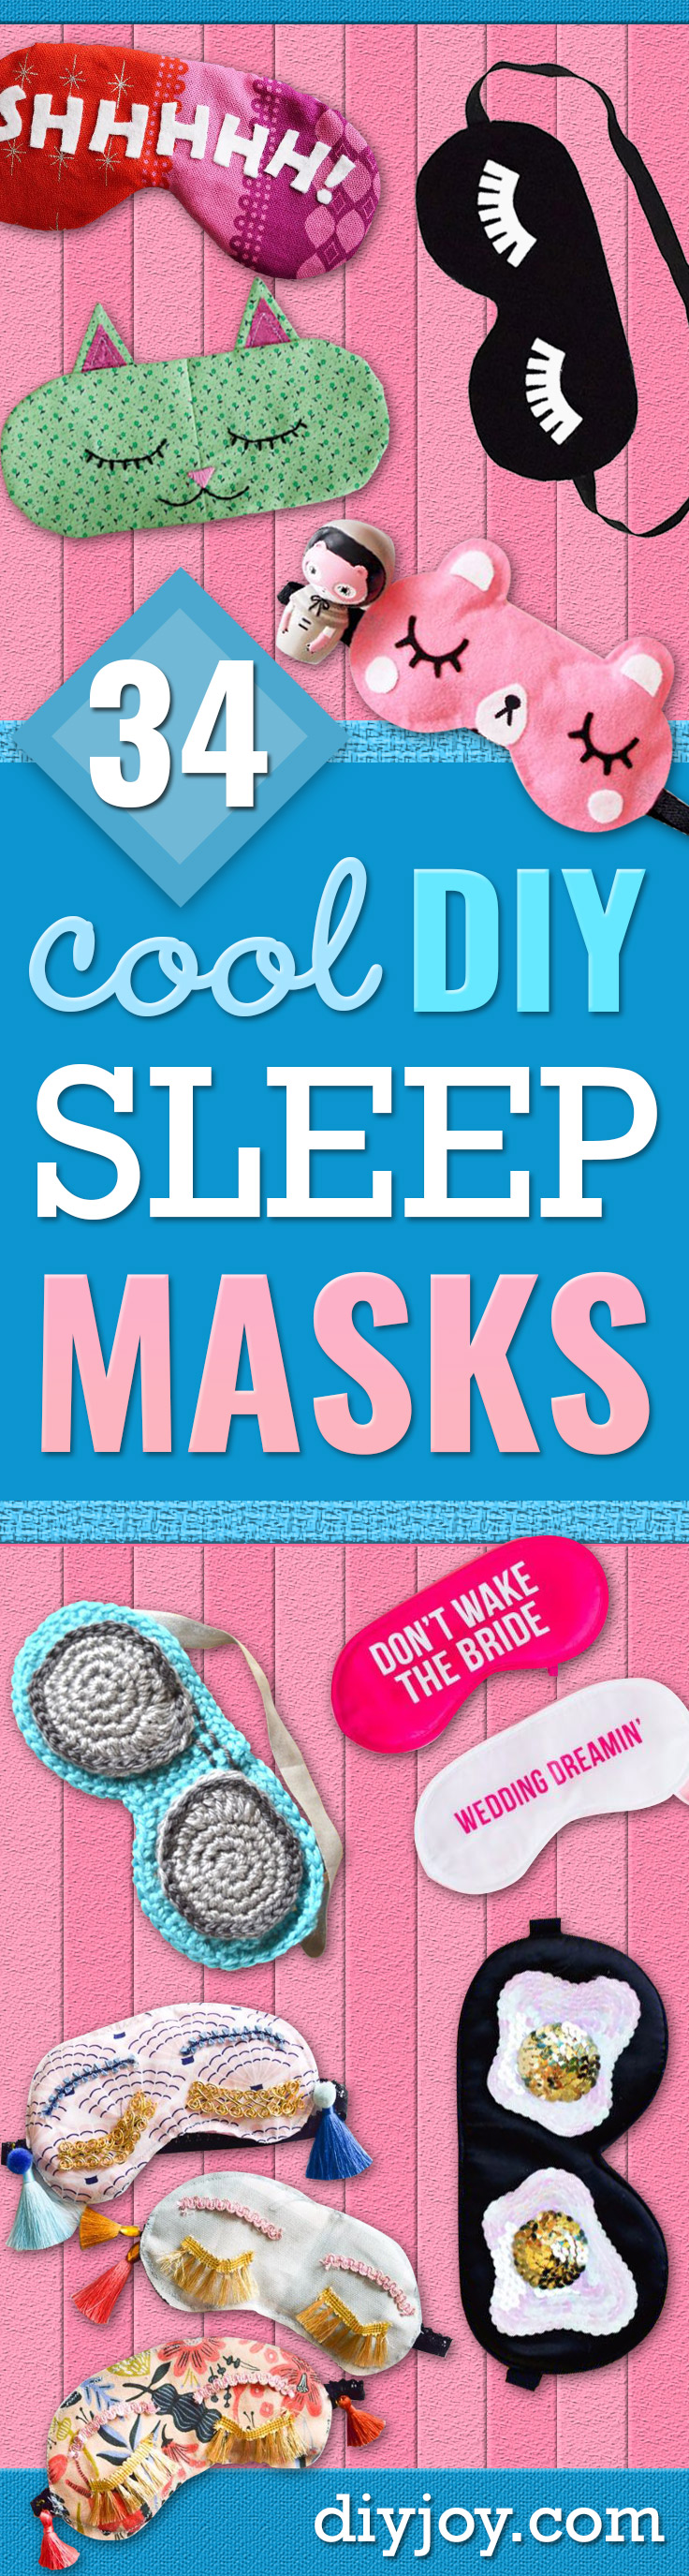 DIY Sleep Masks - Cute and Easy Ideas for Making a Homemade Sleep Mask - Best DIY Gift Ideas for Her - Cool Crafts To Make and Sell On Etsy - Creative Presents for Girls, Women and Teens - Do It Yourself Sleeping With Words, Accents and Fun Accessories for Relaxing http://diyjoy.com/diy-sleep-masks